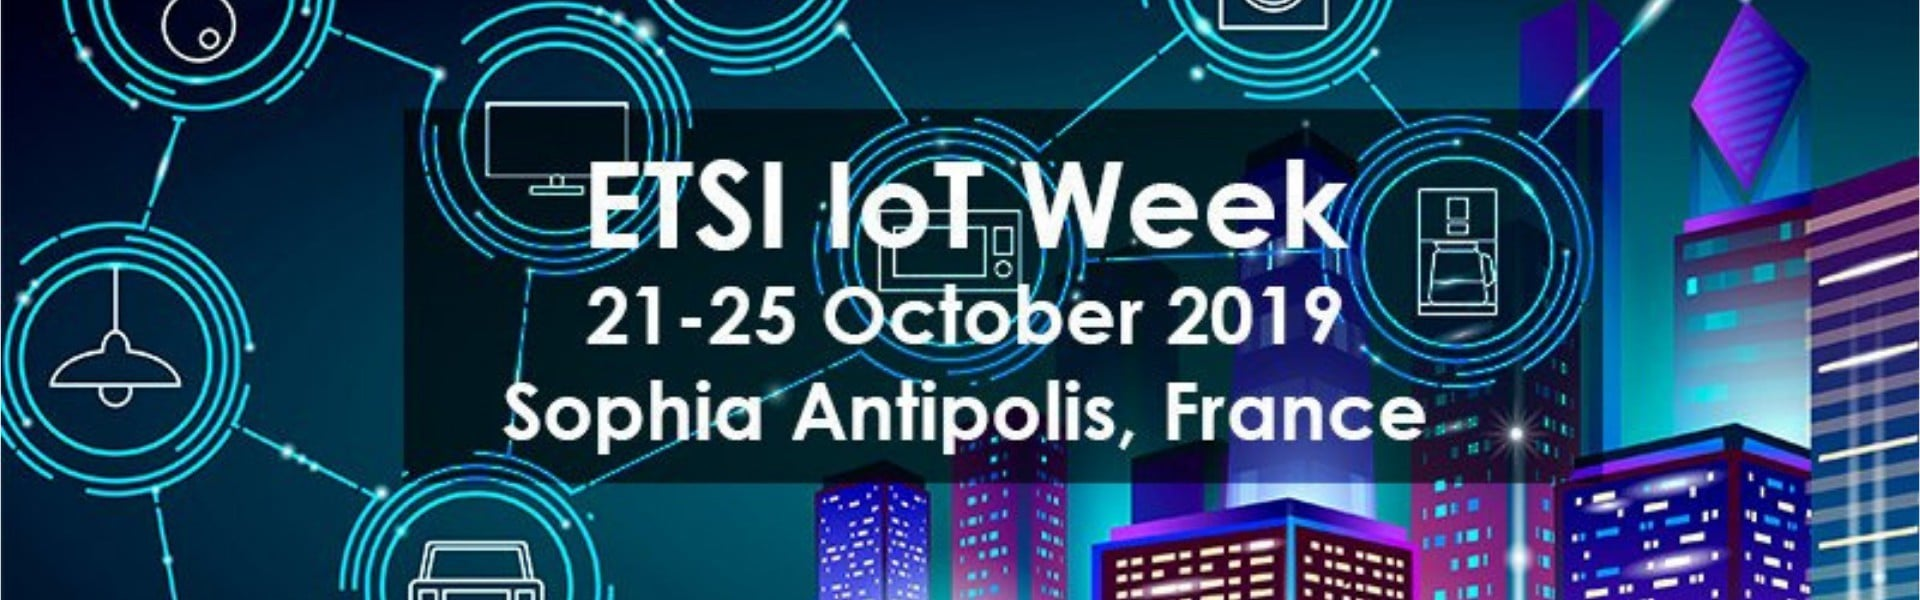 insigh.io attended the ETSI IoT Week 2019